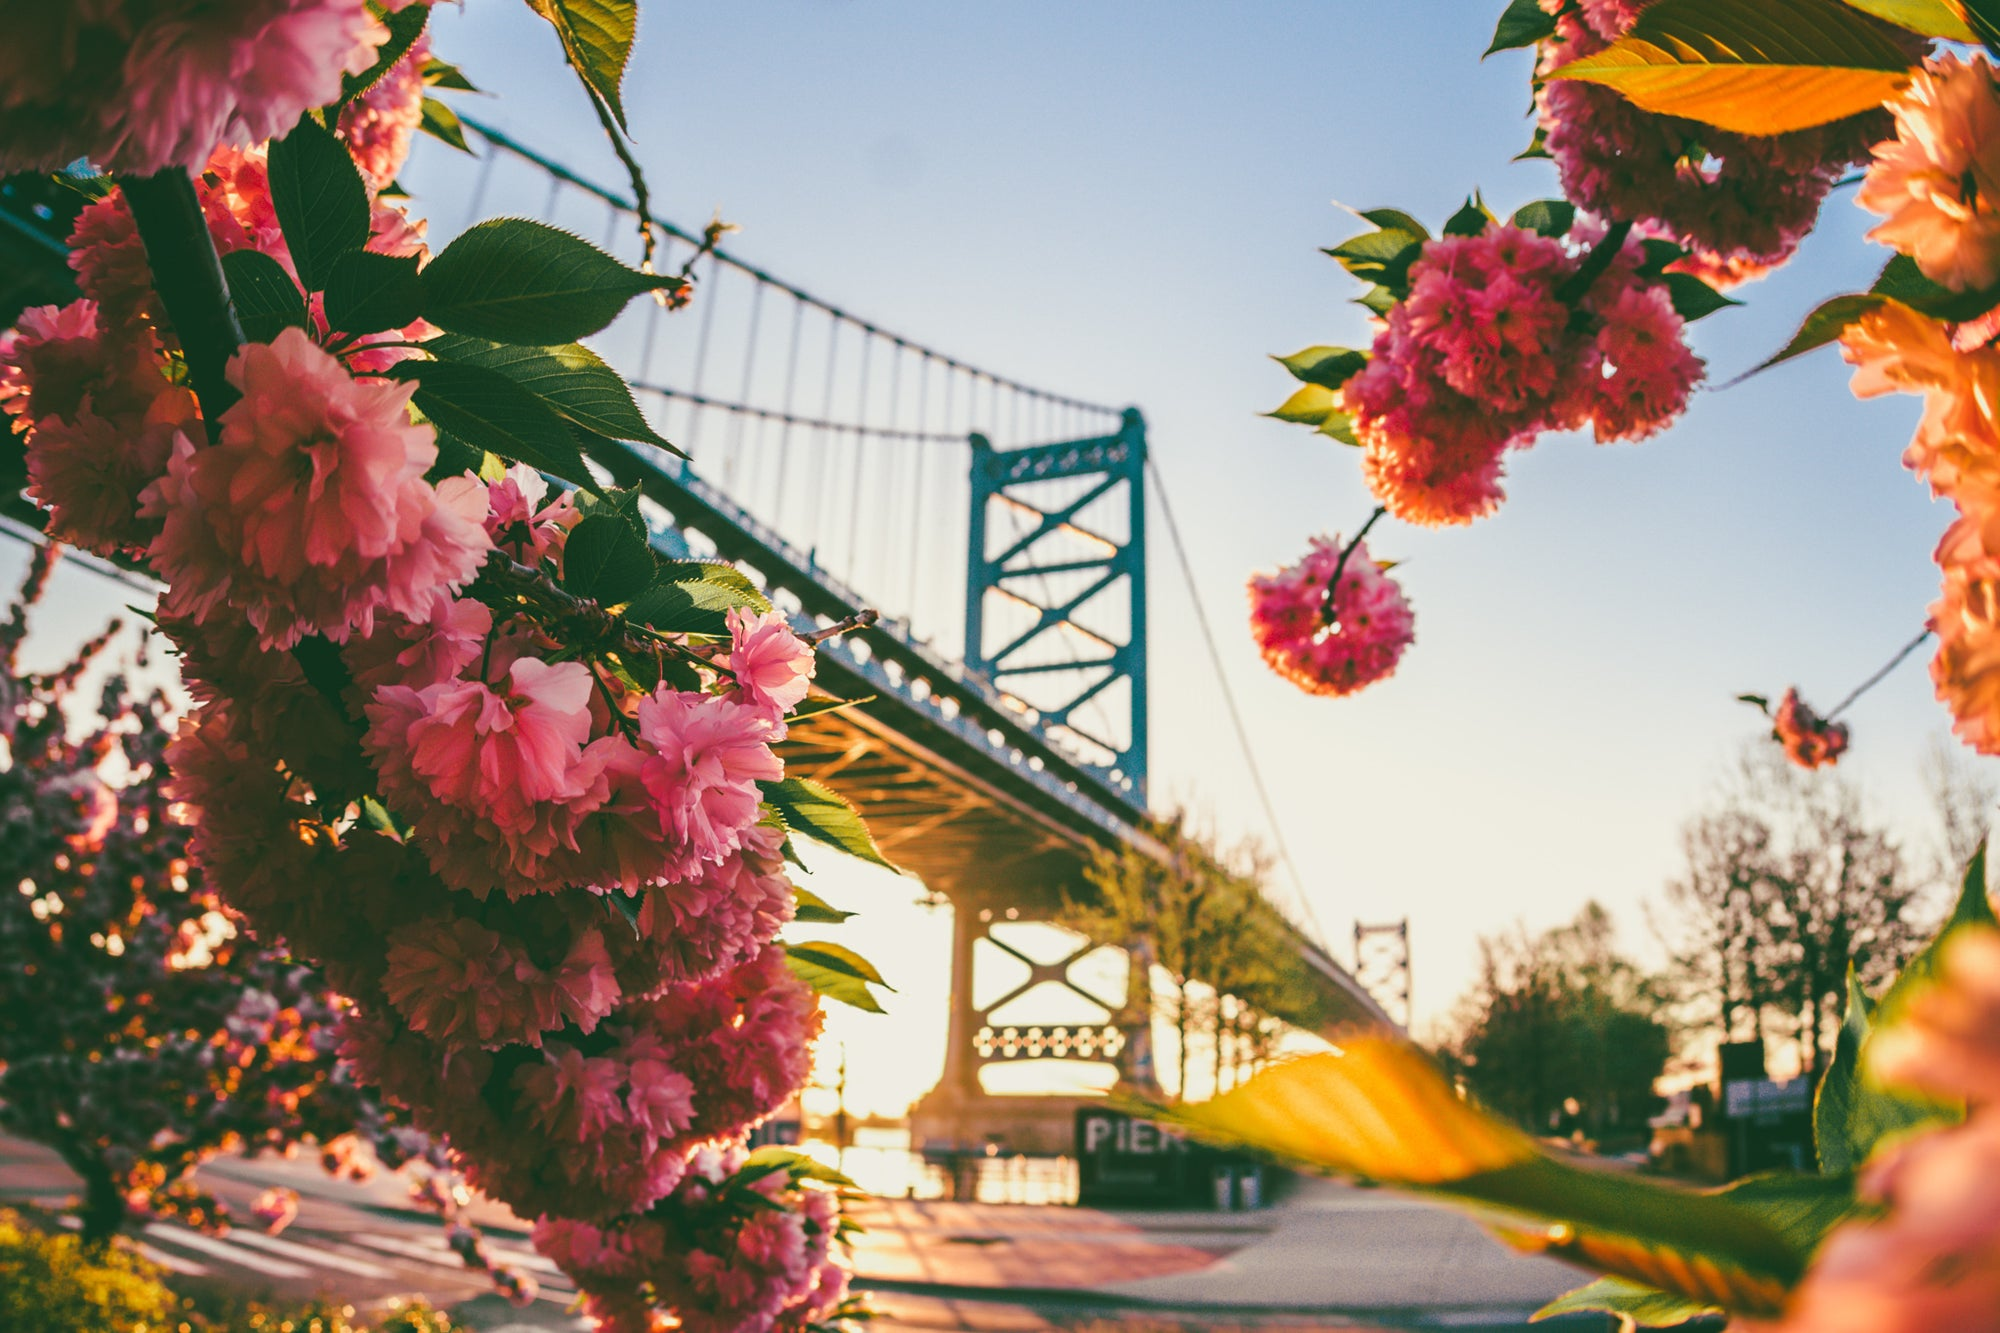 Bridge and flowers in Philadelphia